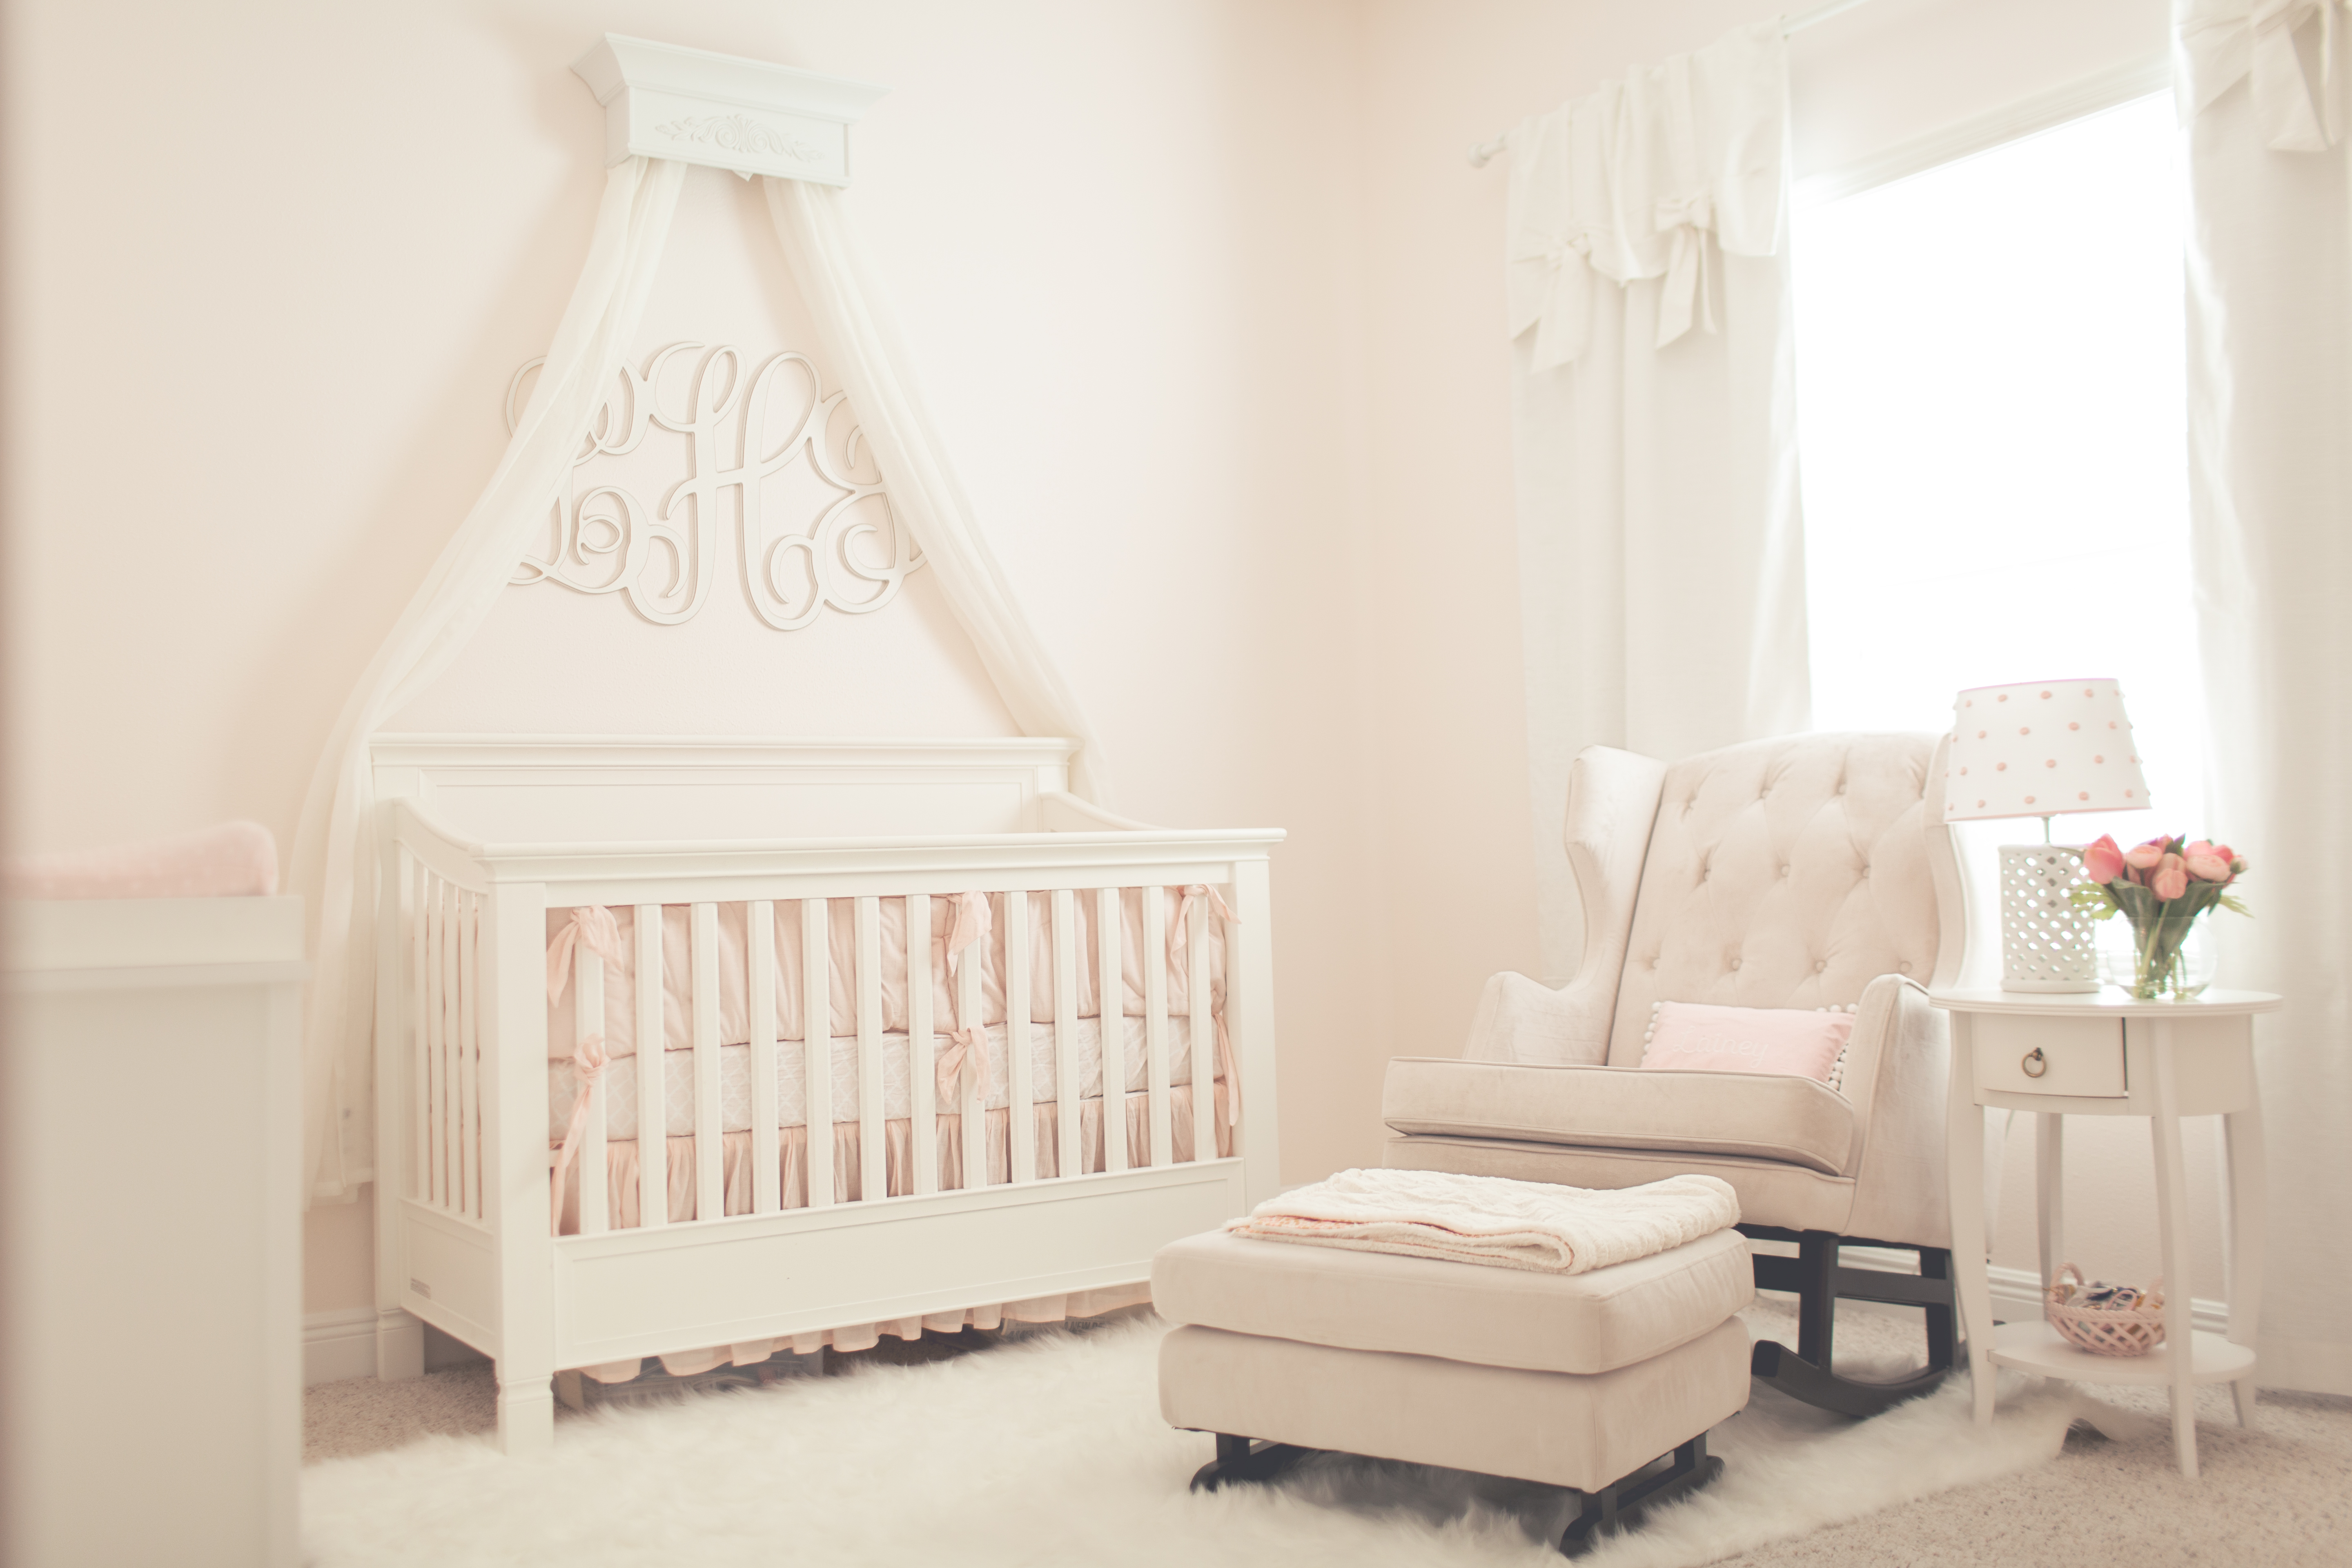 bedroom chair design ideas image black spandex covers pink simplicity nursery - project